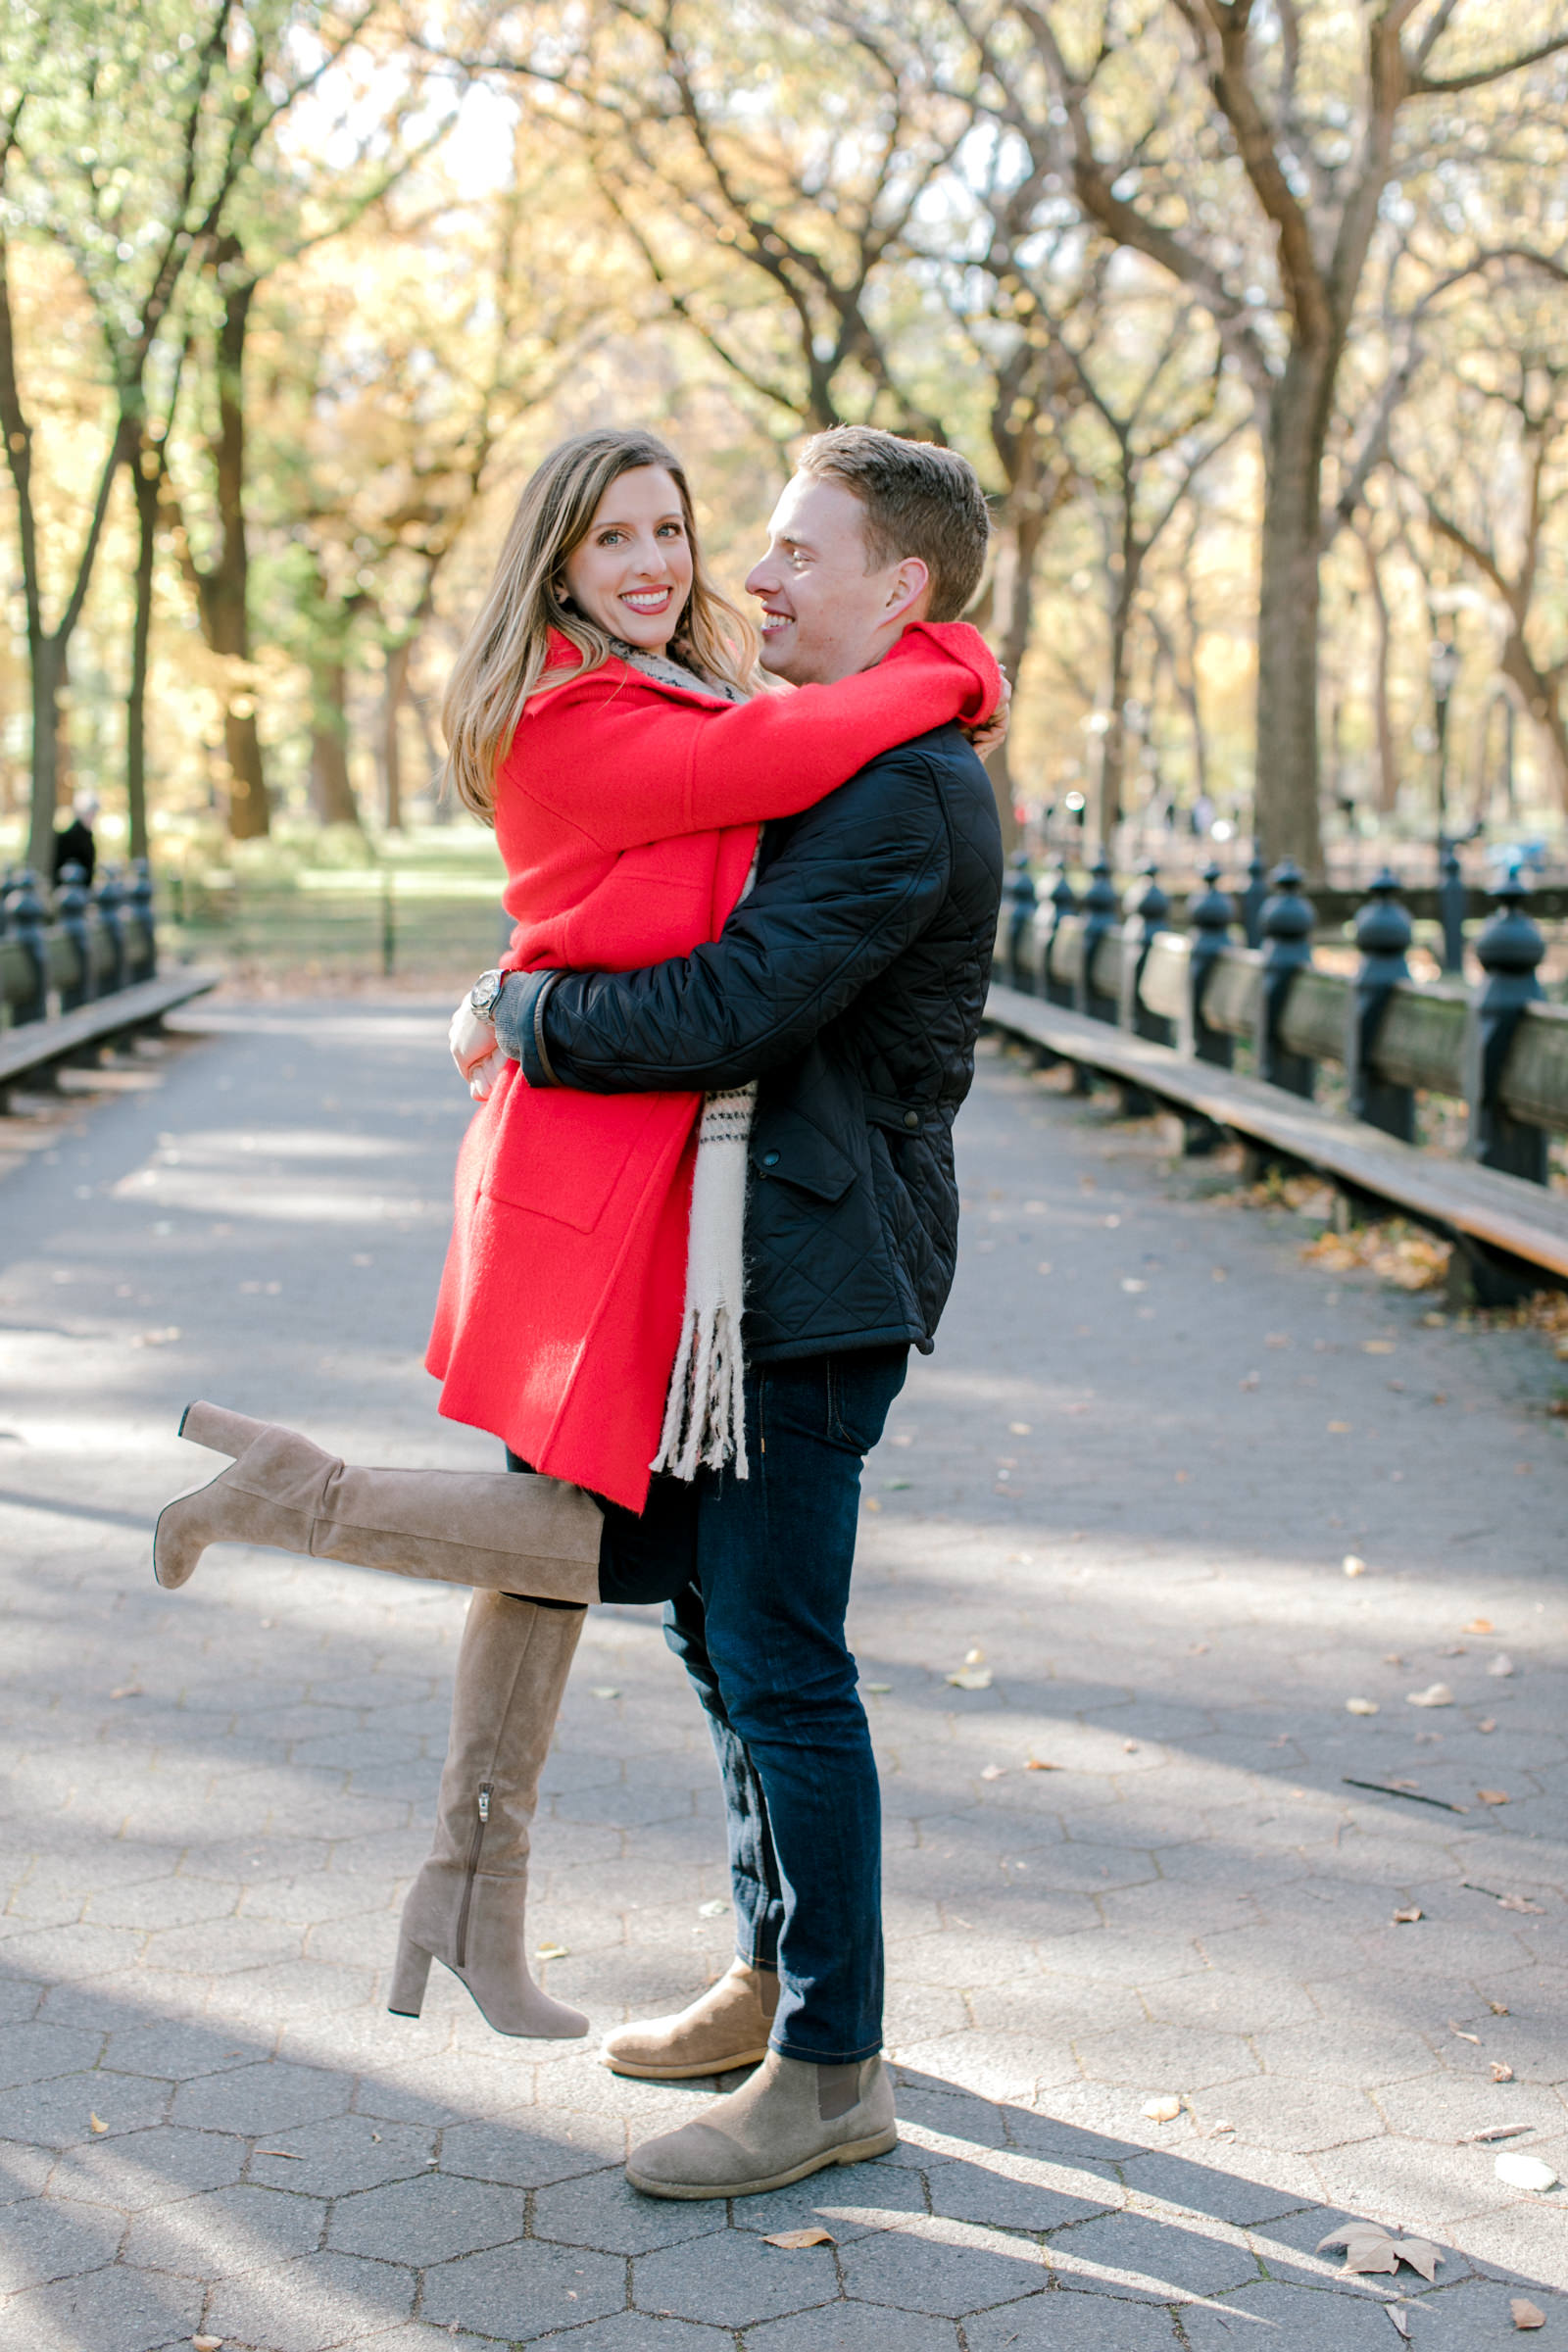 Central-park-fall-engagement-session-by Tanya Isaeva-68.jpg